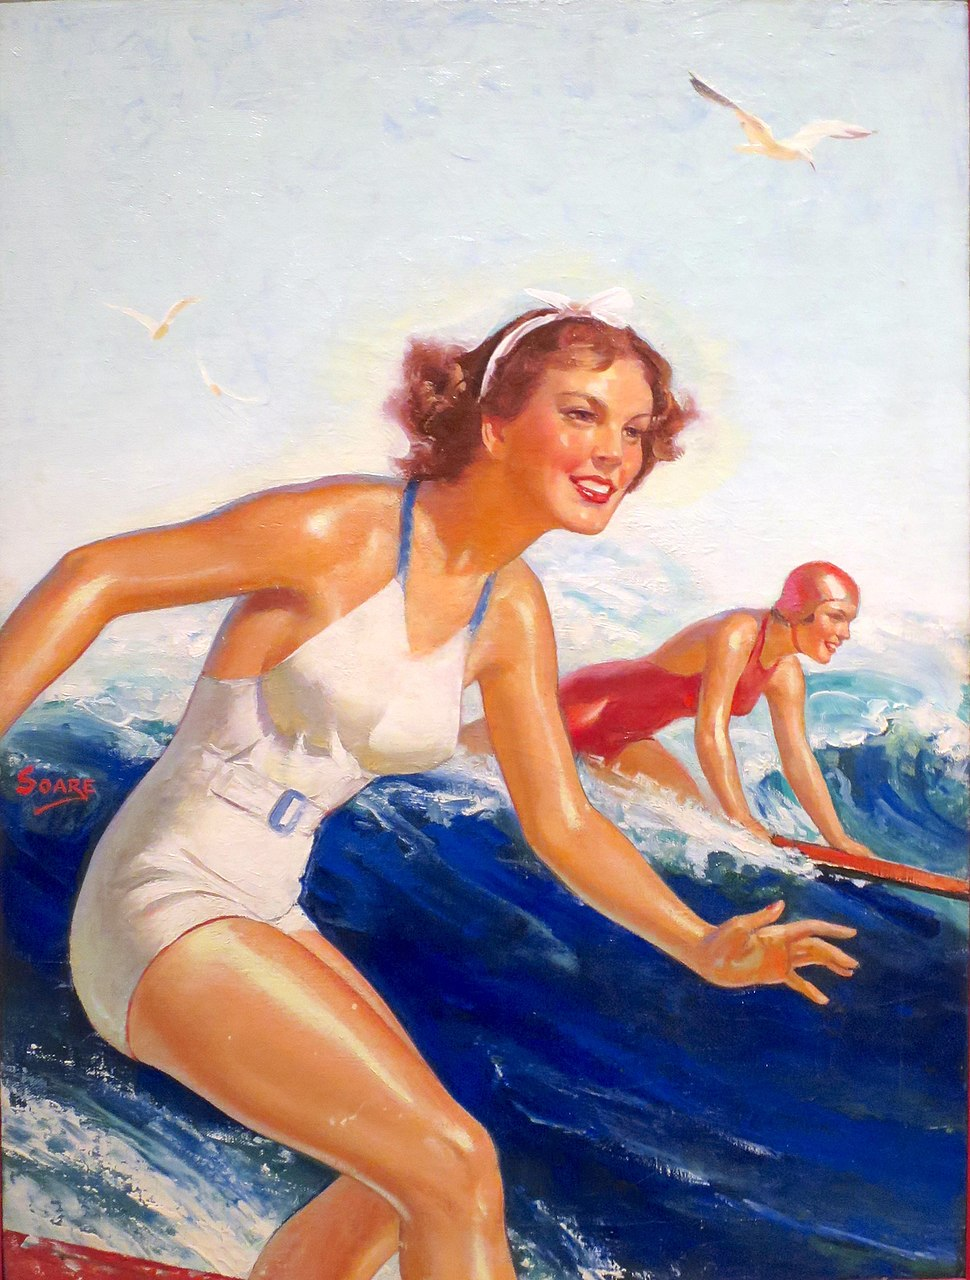 %27Two Surfer Girls%27 by William Fulton Soare, oil on canvas, c. 1935